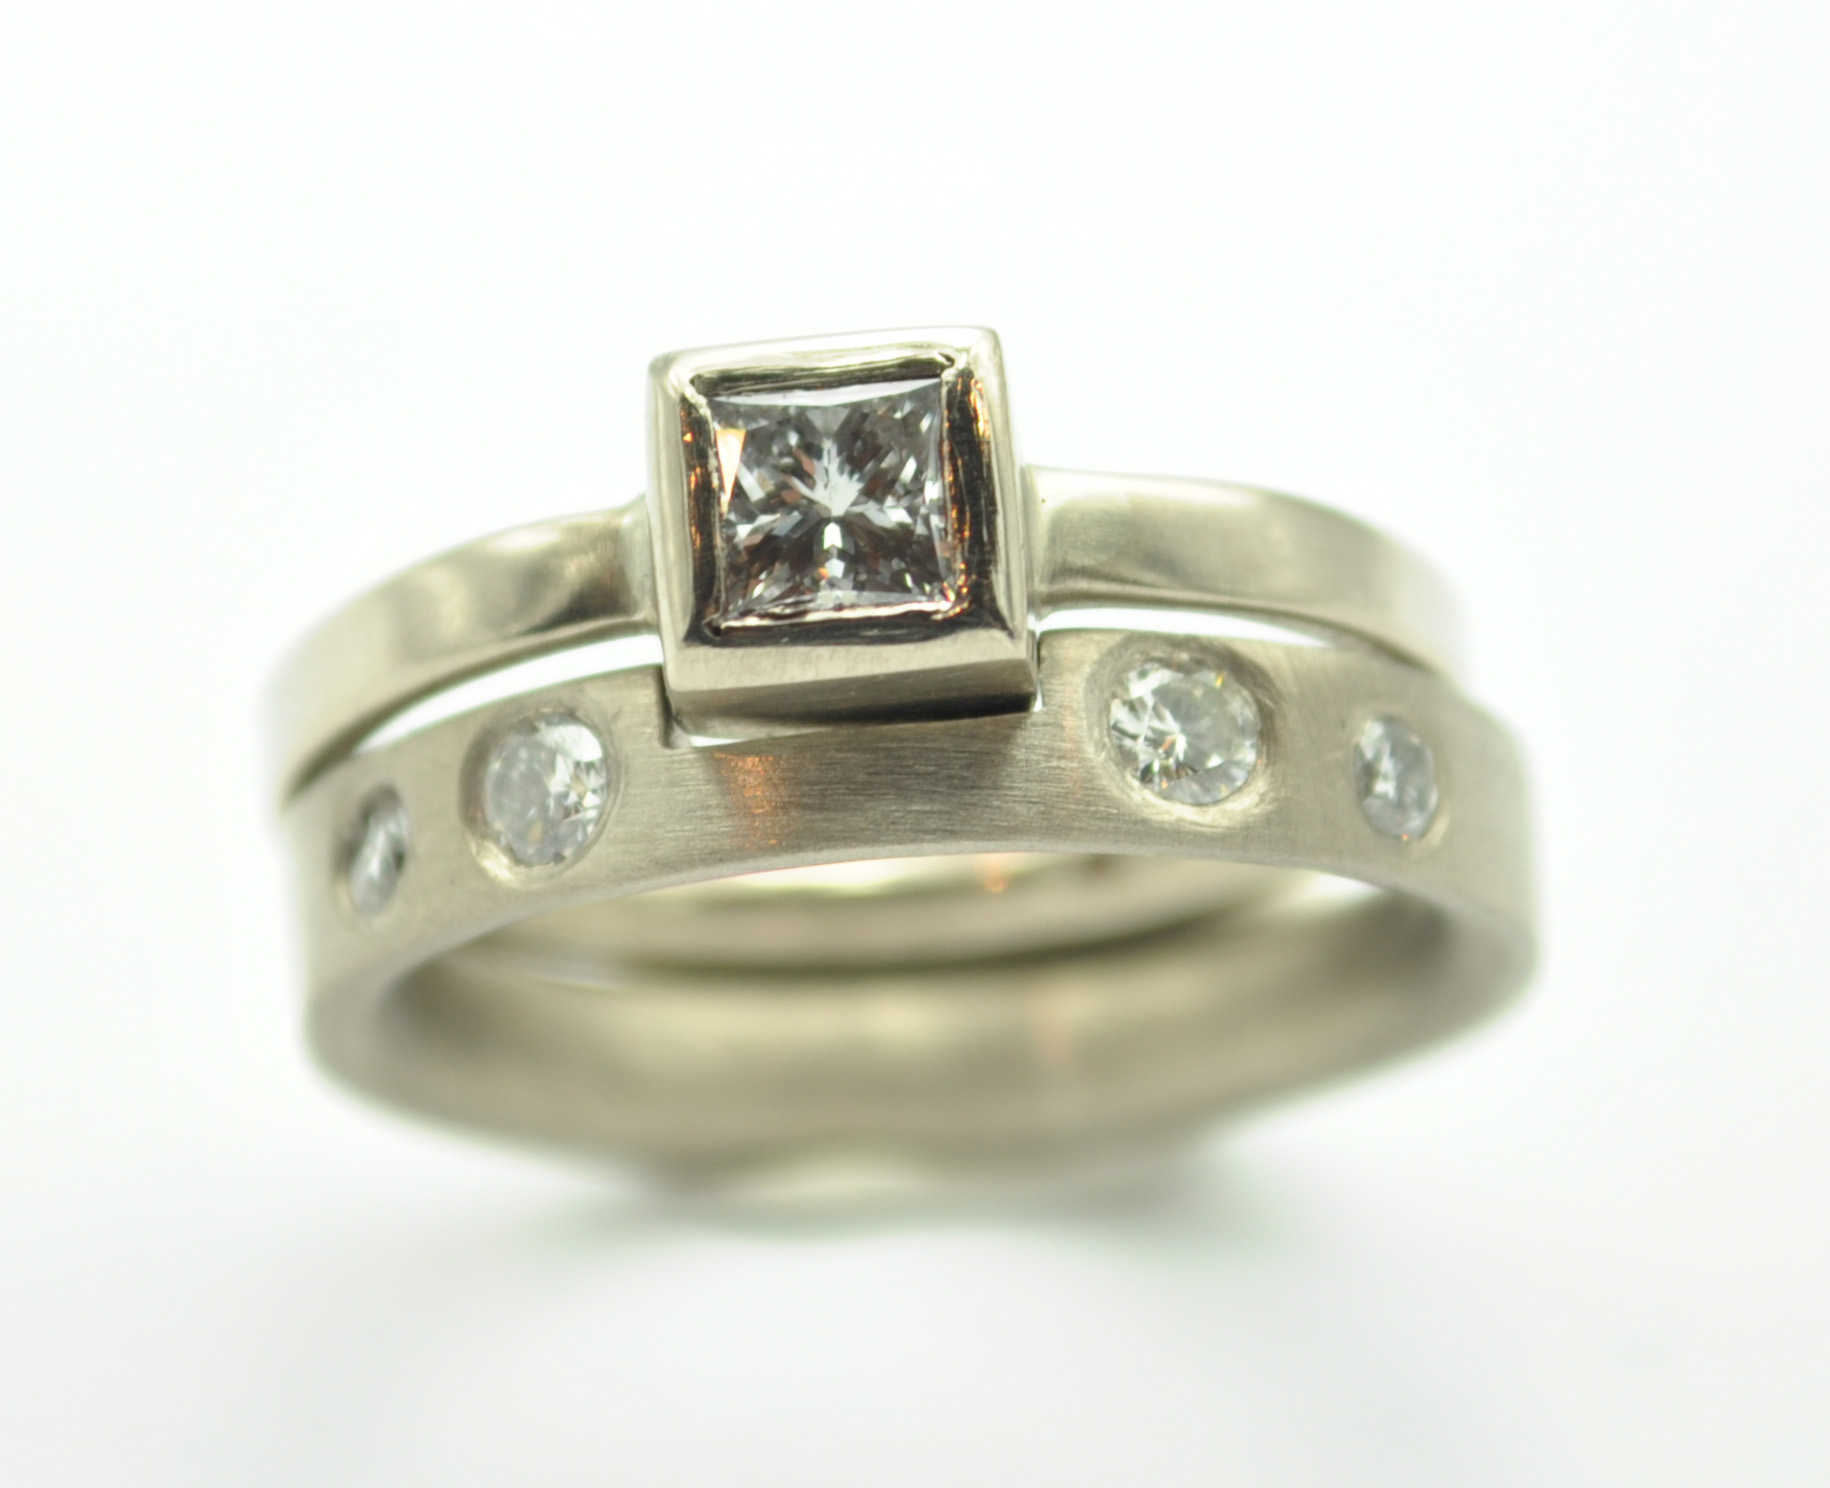 rings jewelry blog blogs millner the perfect business ring img beth engagement choosing